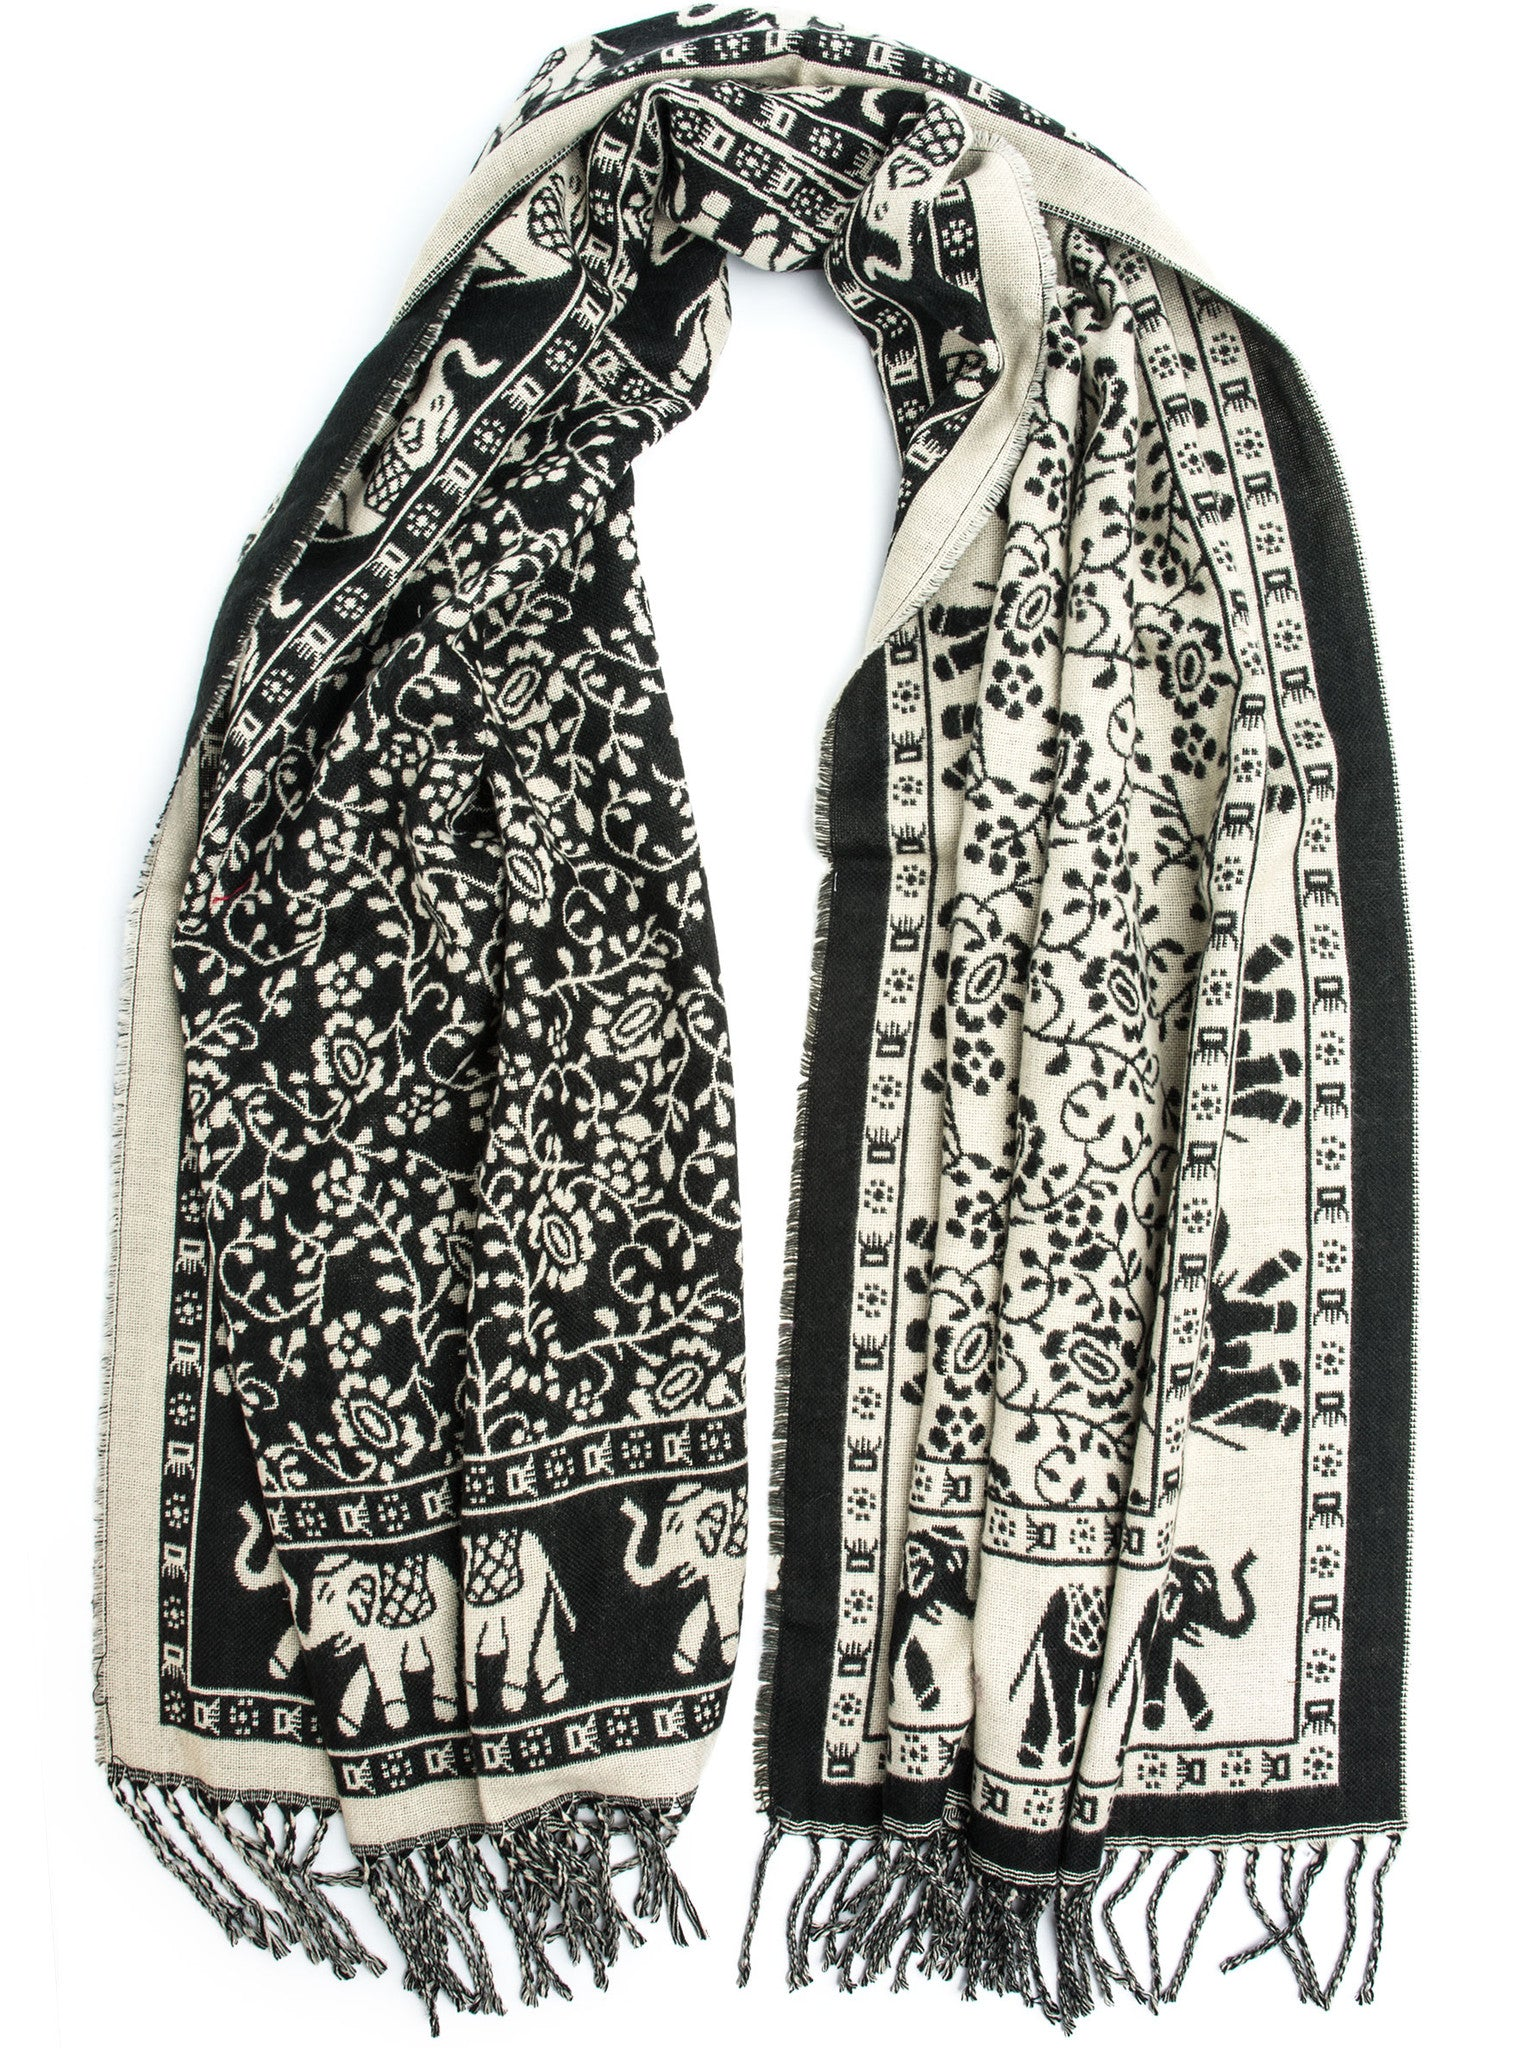 Scarves - Hathi Winter Blanket Scarf, Woven Indian Elephant Design -() Bohomonde  - 4